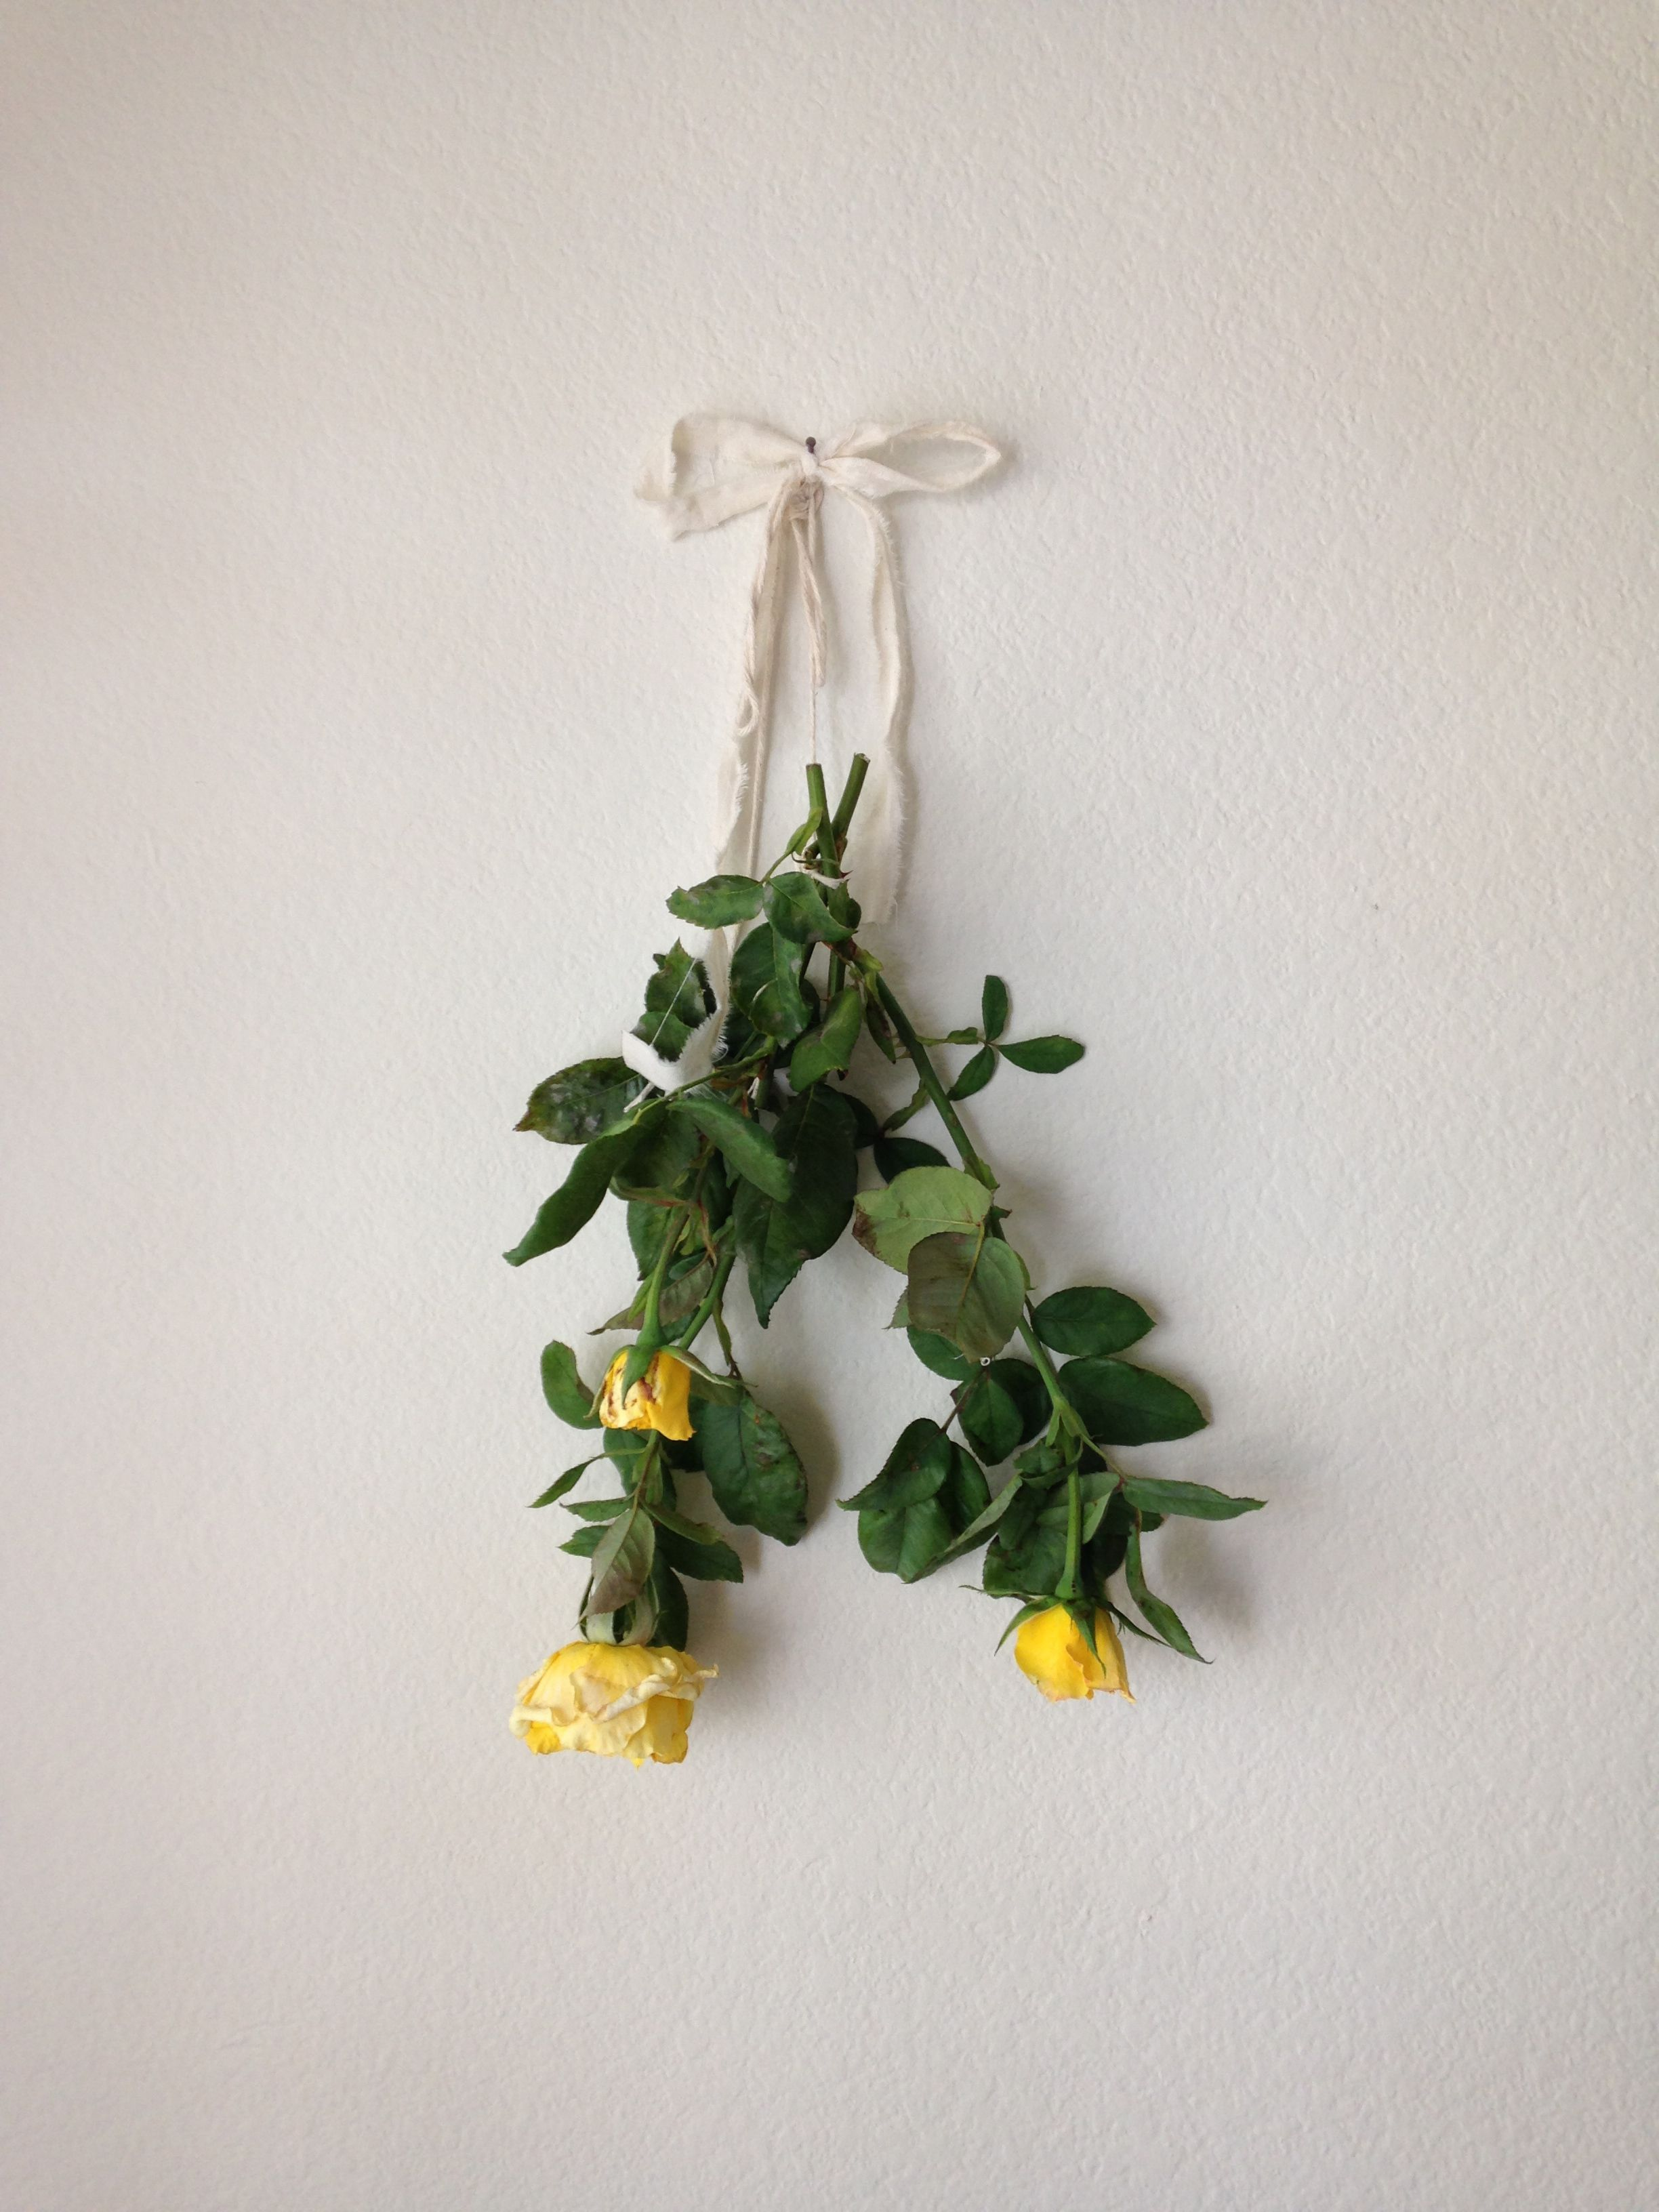 Hang Dried Flowers And Herbs As An Inexpensive Way To Decorate Blank Walls.